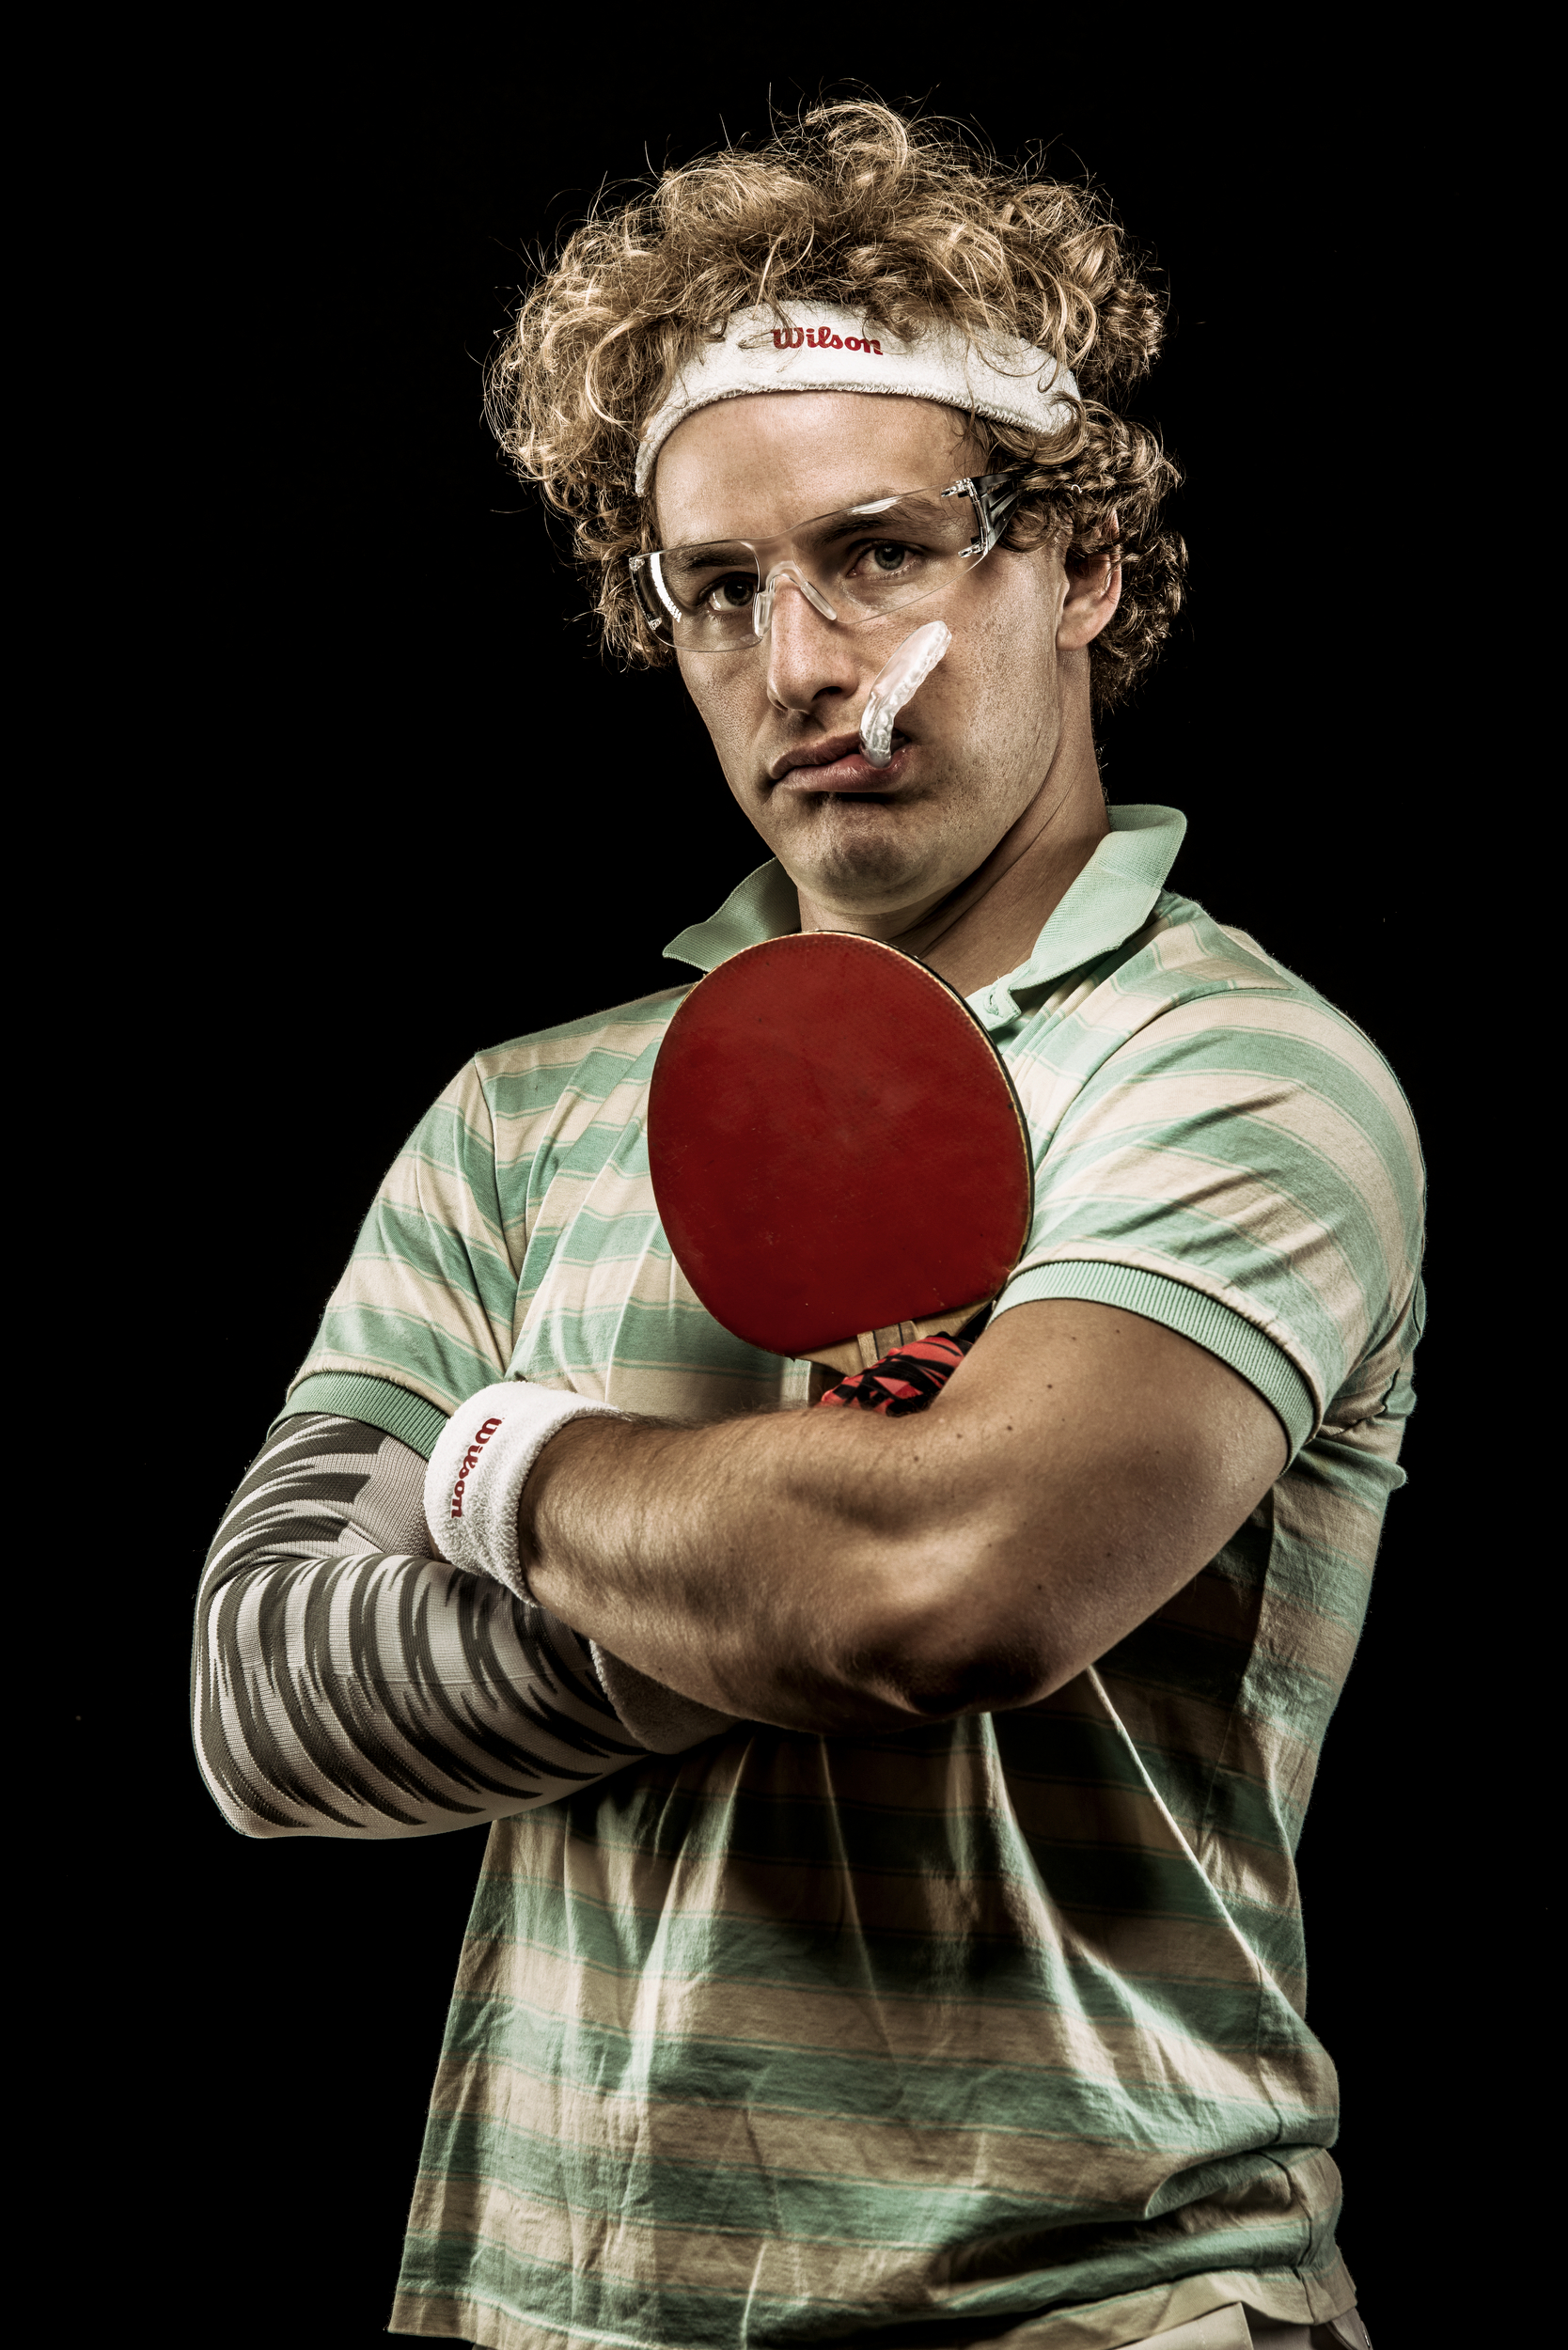 Funny table tennis player portrait